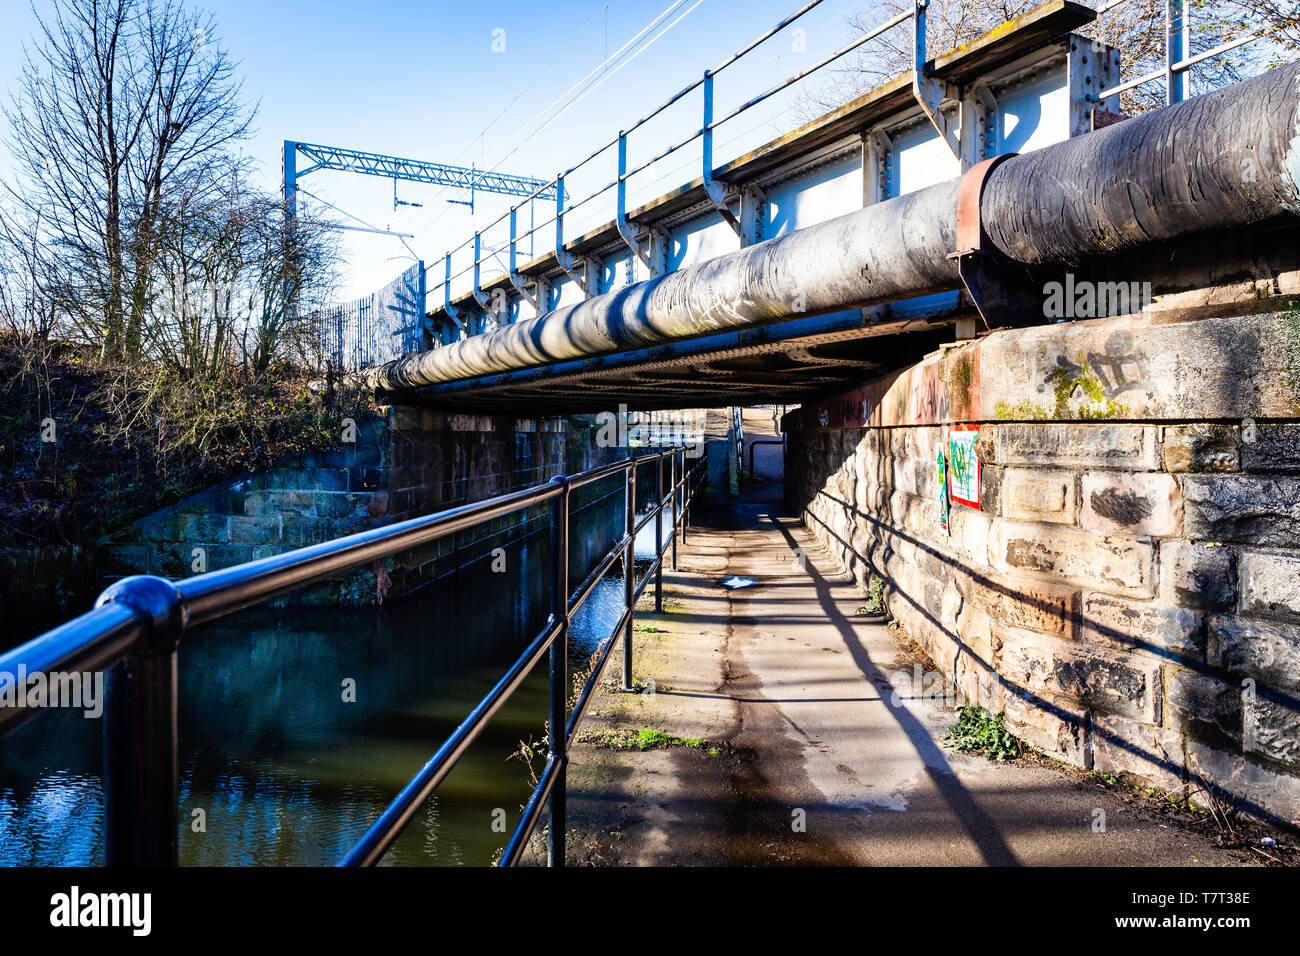 Towpath under a large pipe, and railway bridge. - Stock Image